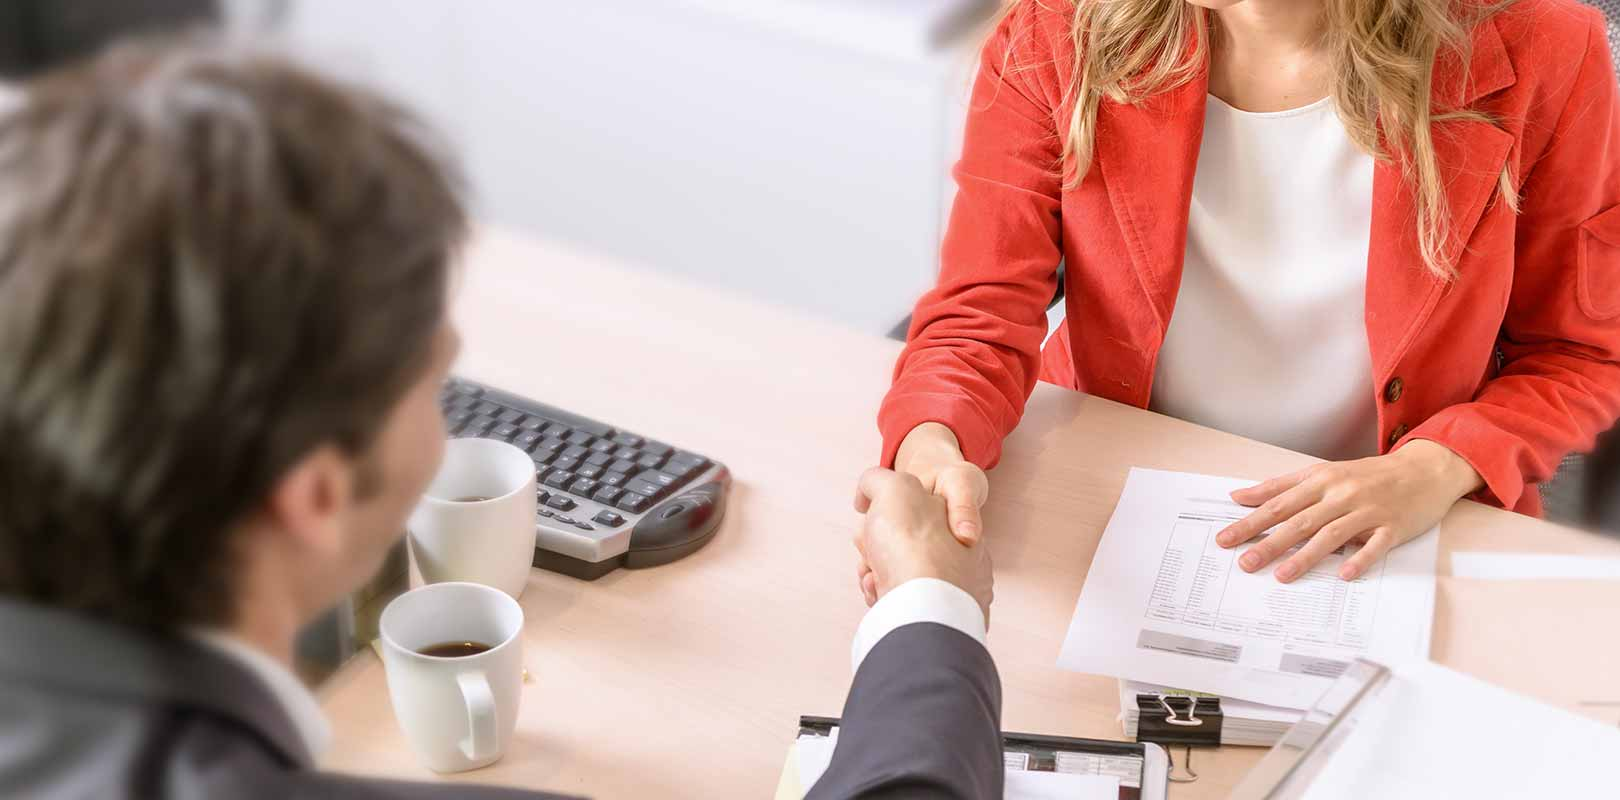 Sales woman agreeing a design contract with client